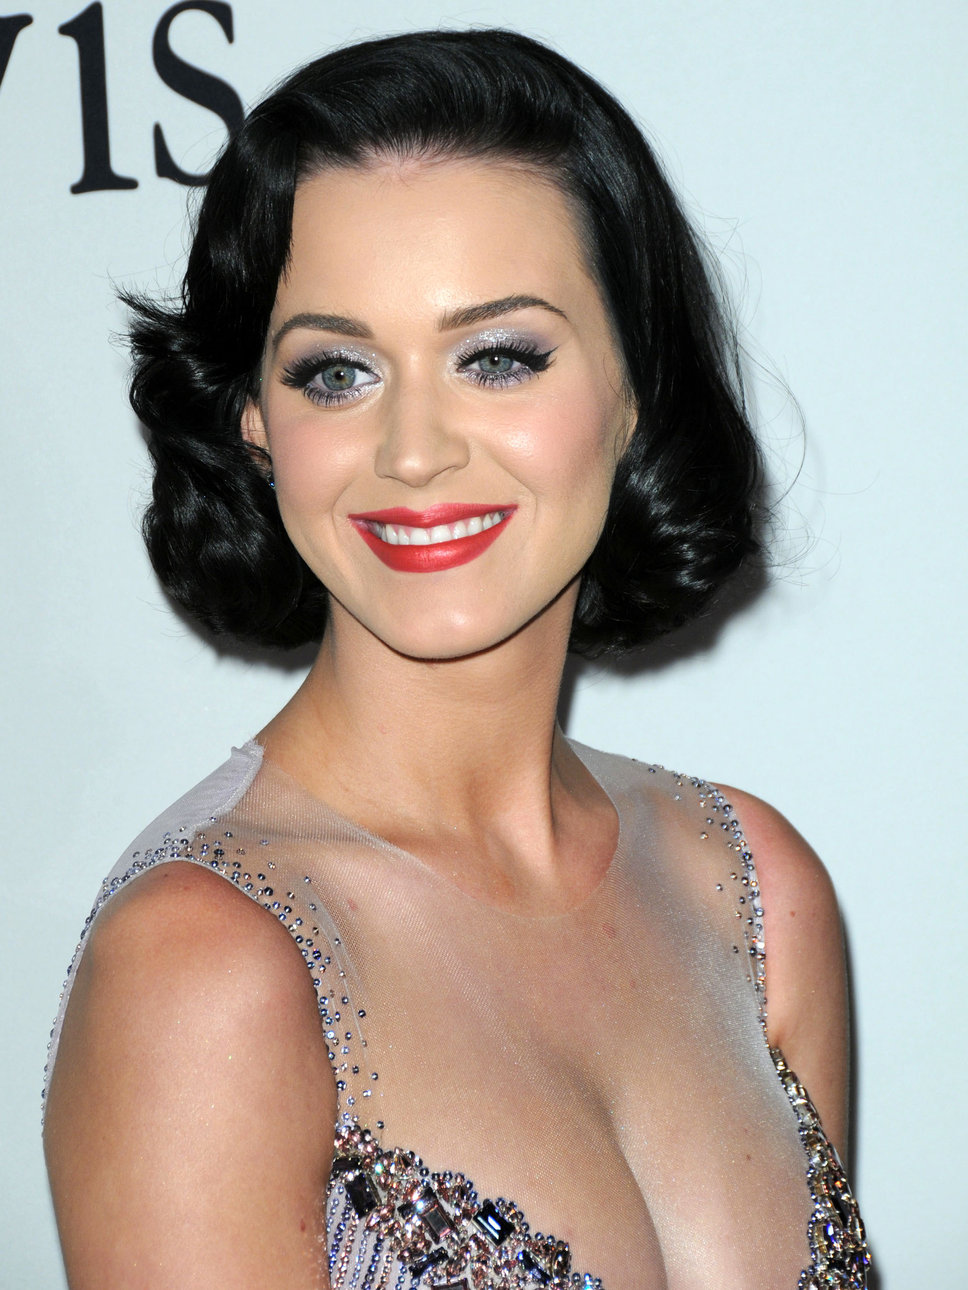 Katy Perry: Pictures And Biography